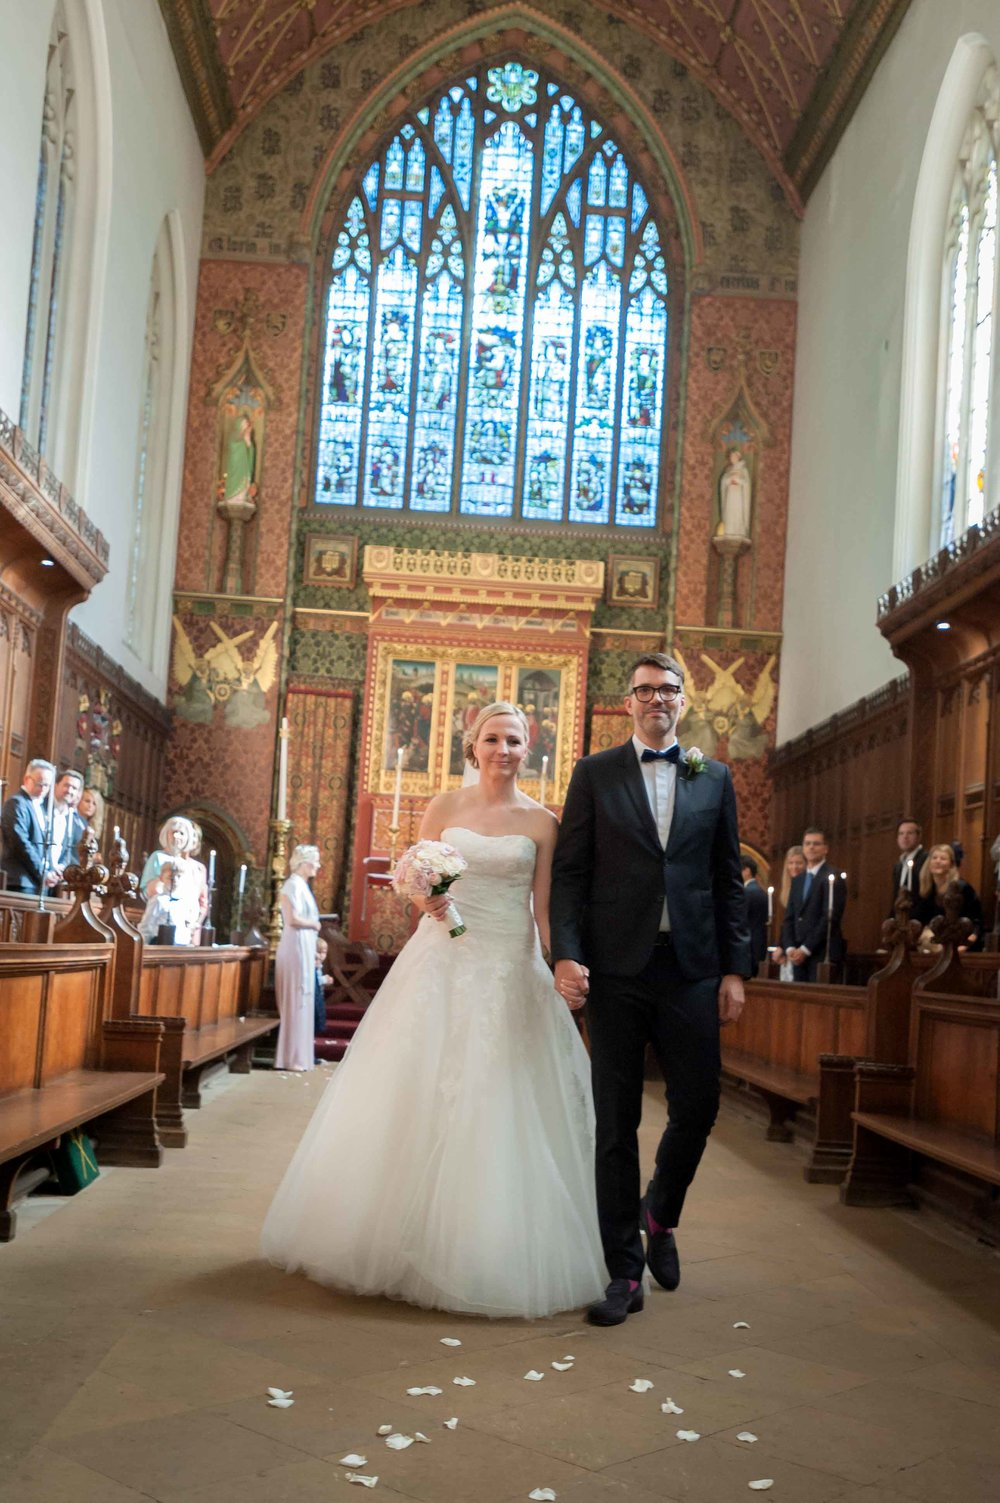 Adrian_Nicole_Charnwood_Weddings_Queens_College_Cambridge-1025.jpg